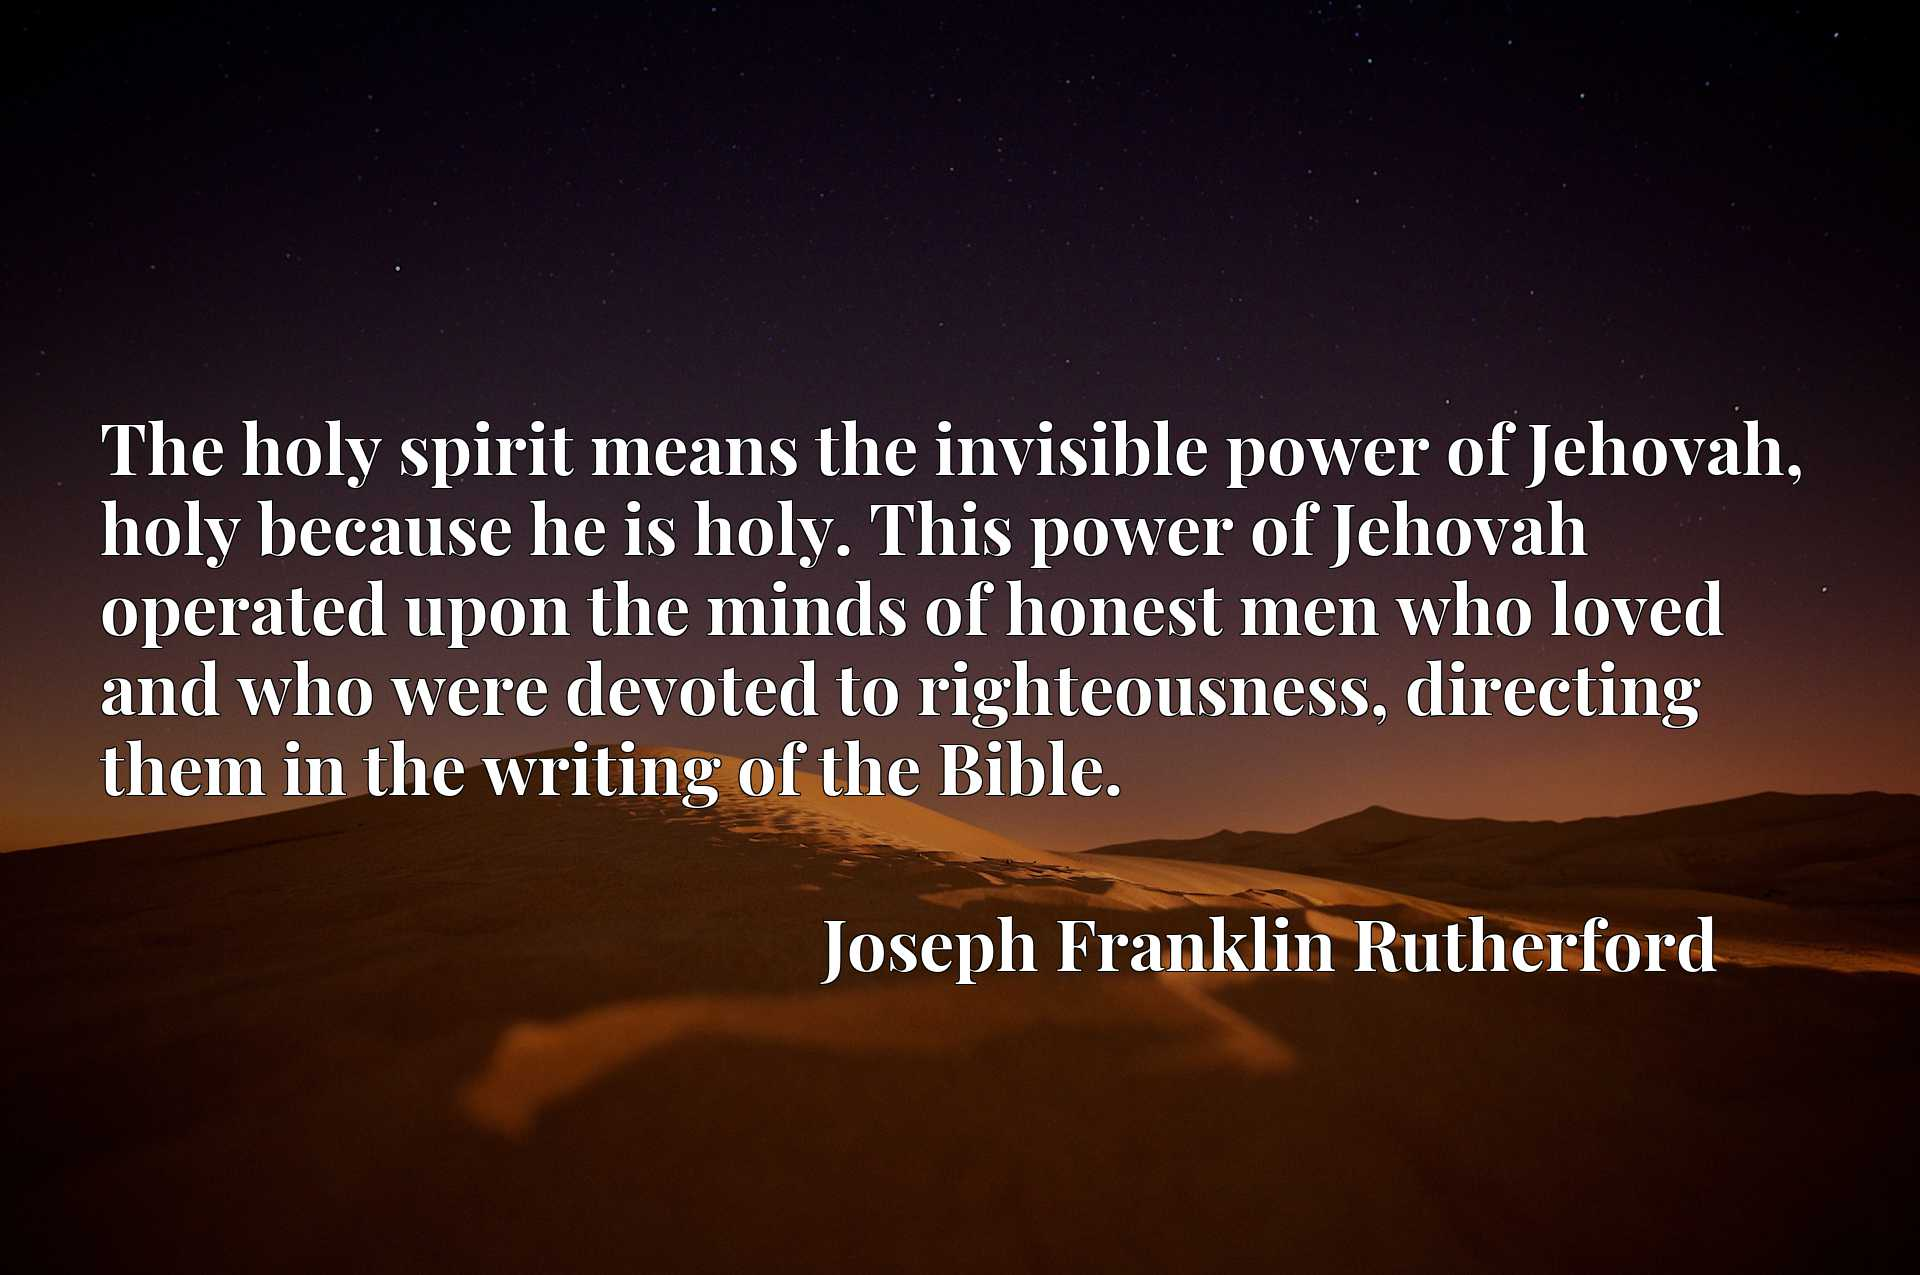 The holy spirit means the invisible power of Jehovah, holy because he is holy. This power of Jehovah operated upon the minds of honest men who loved and who were devoted to righteousness, directing them in the writing of the Bible.